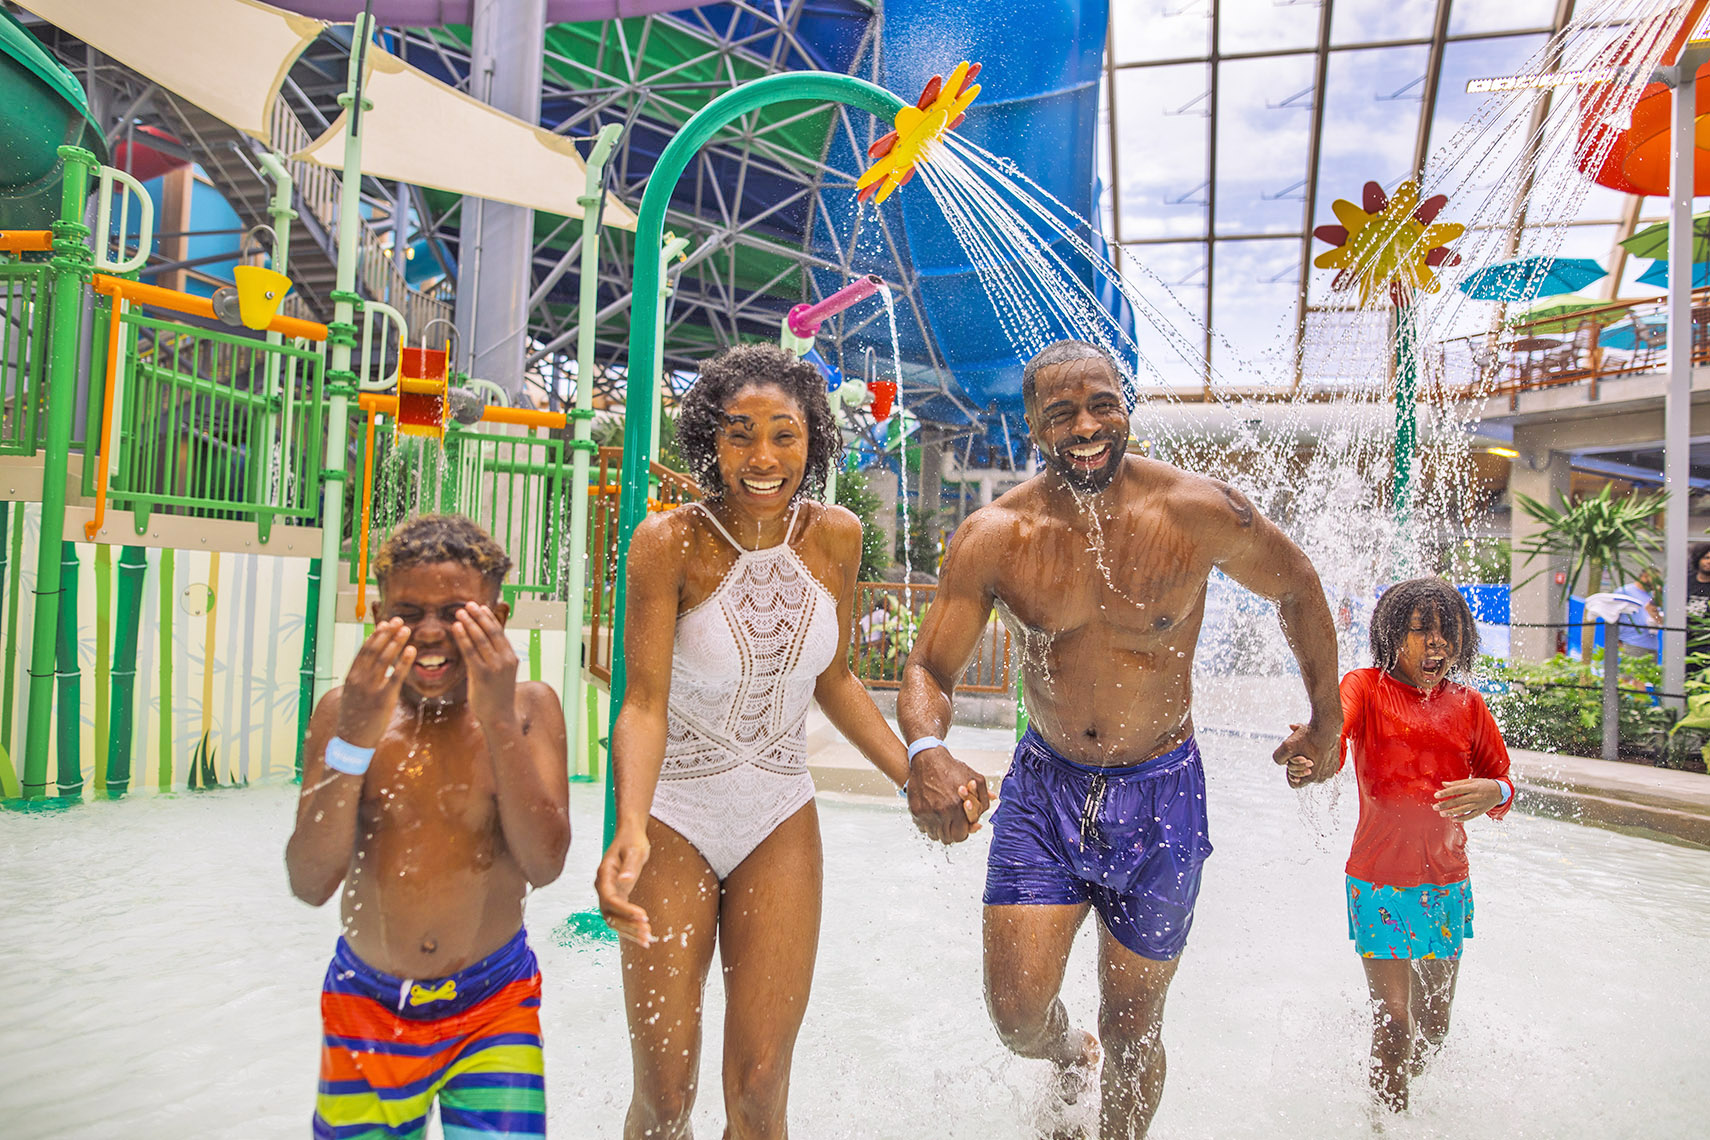 family have a great time in a water attraction